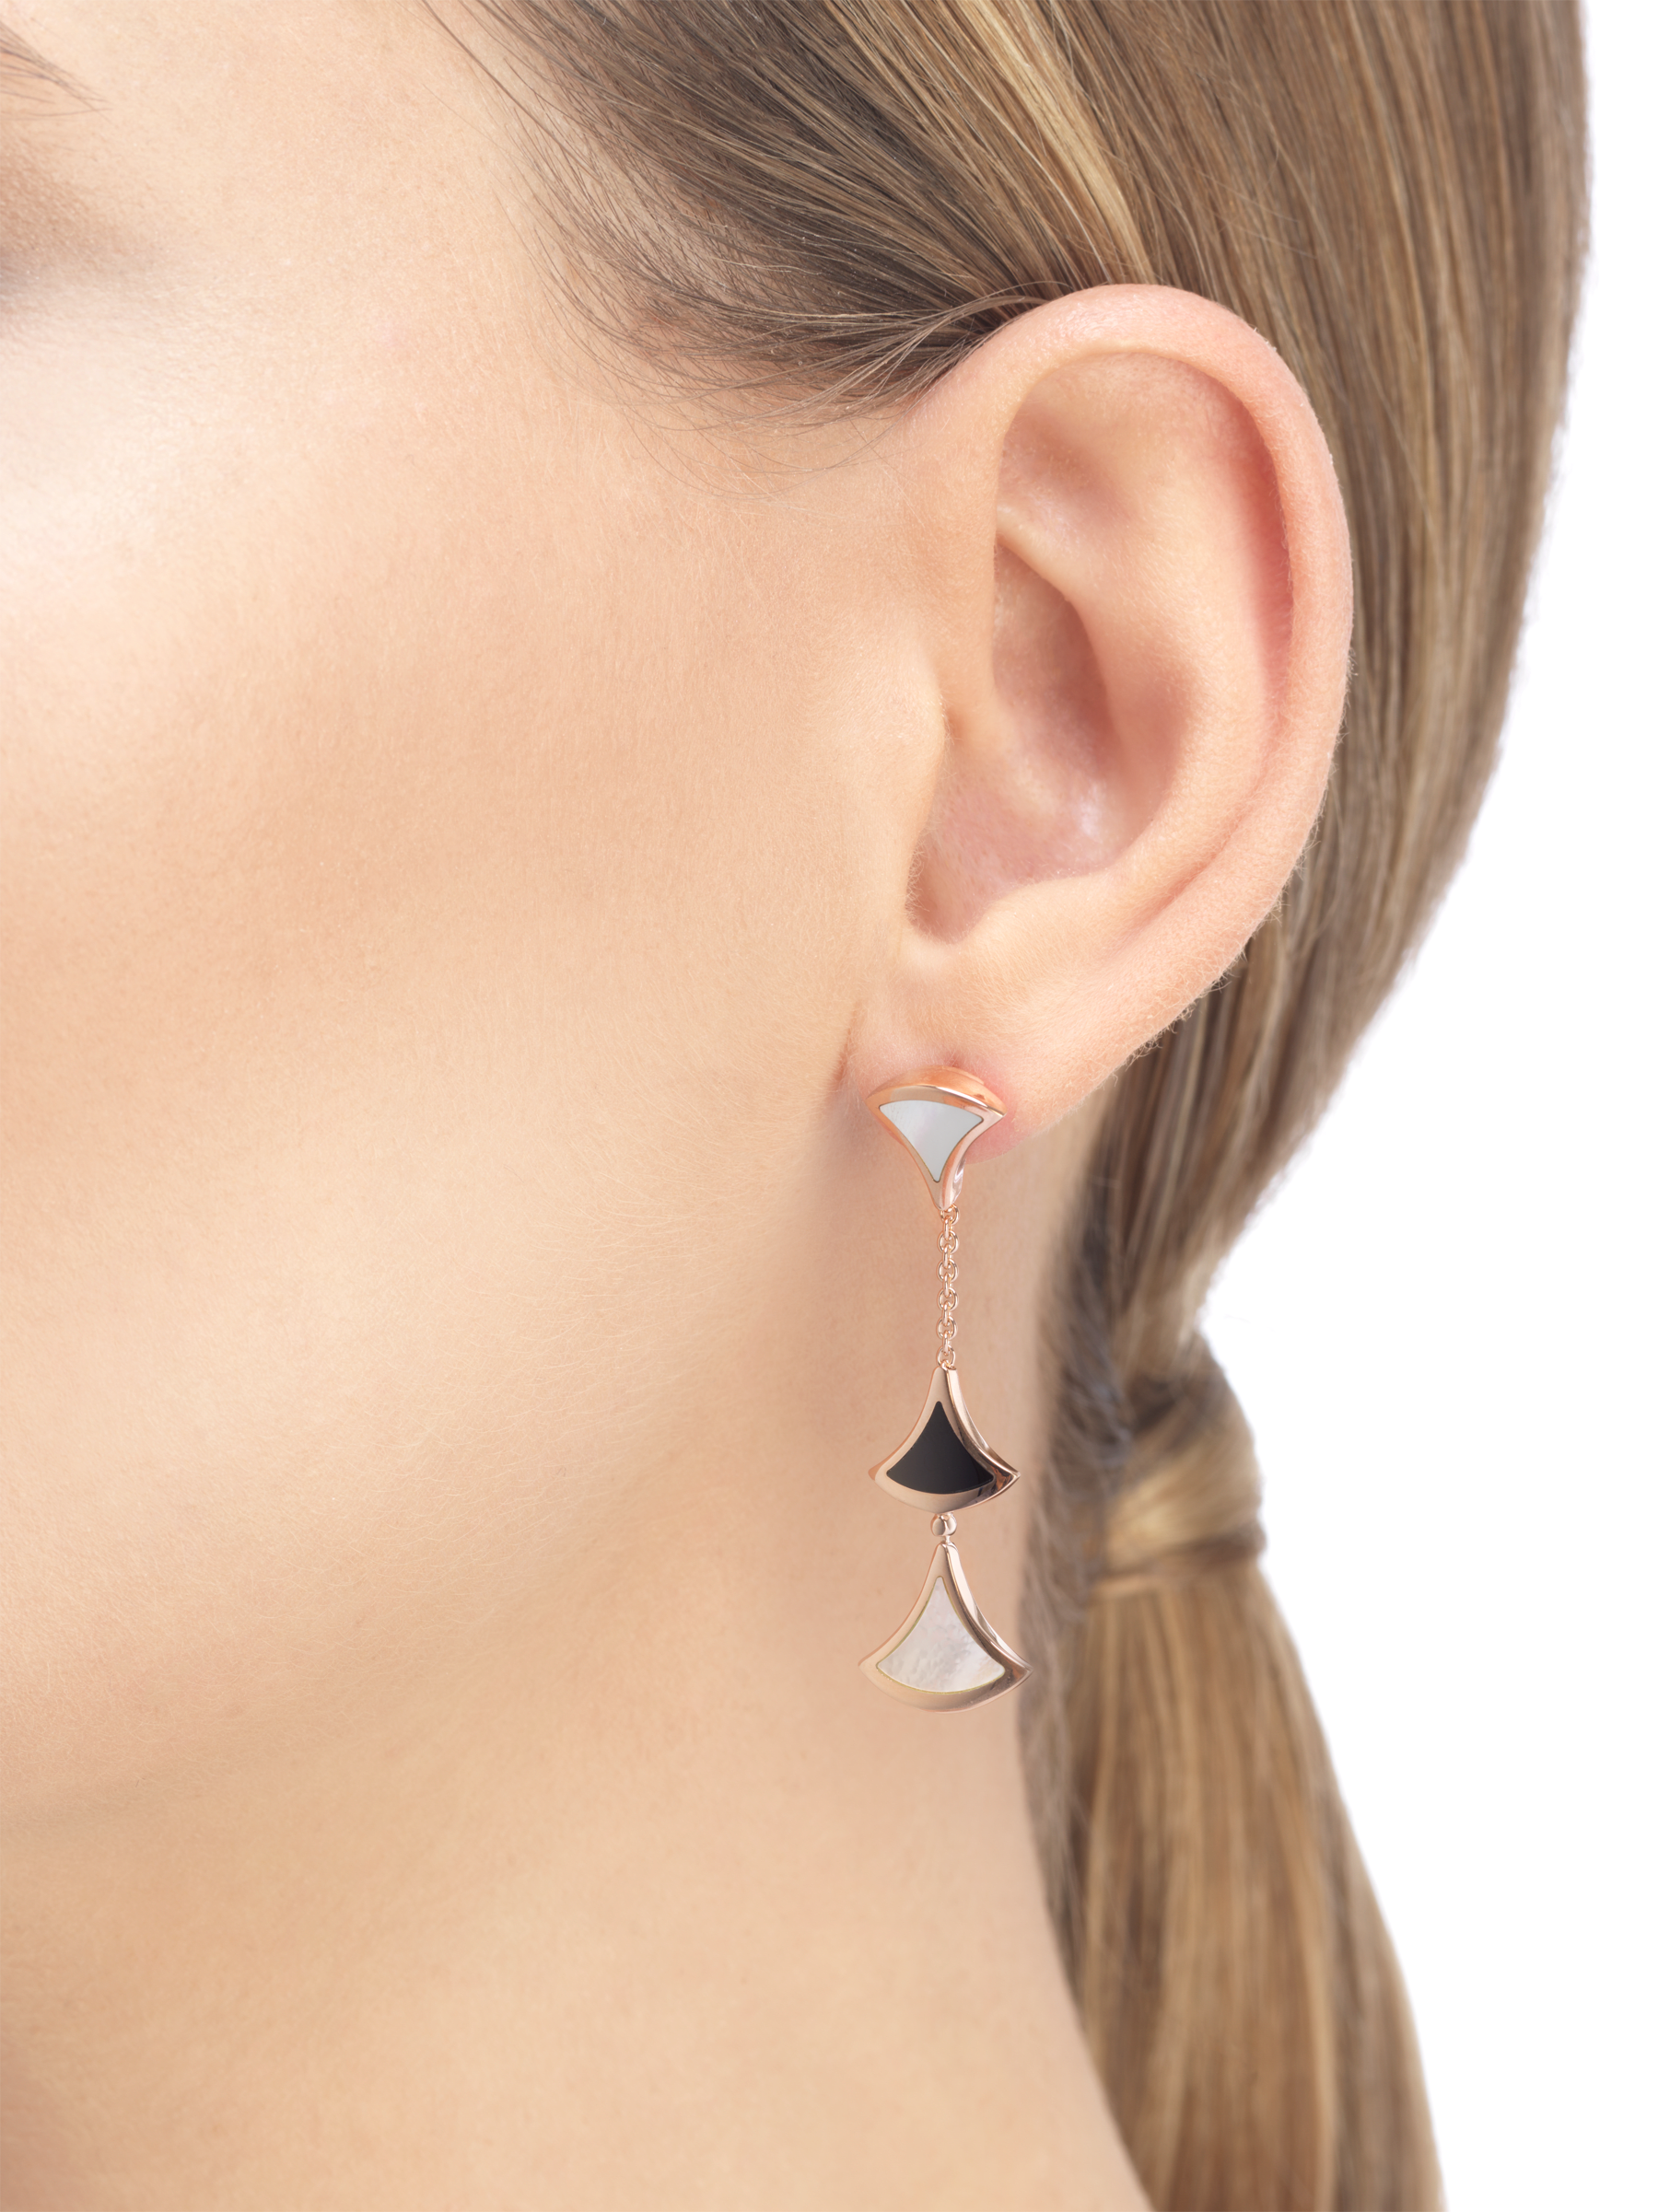 DIVAS' DREAM earrings in 18 kt rose gold set with onyx and mother-of-pearl elements. 350260 image 3